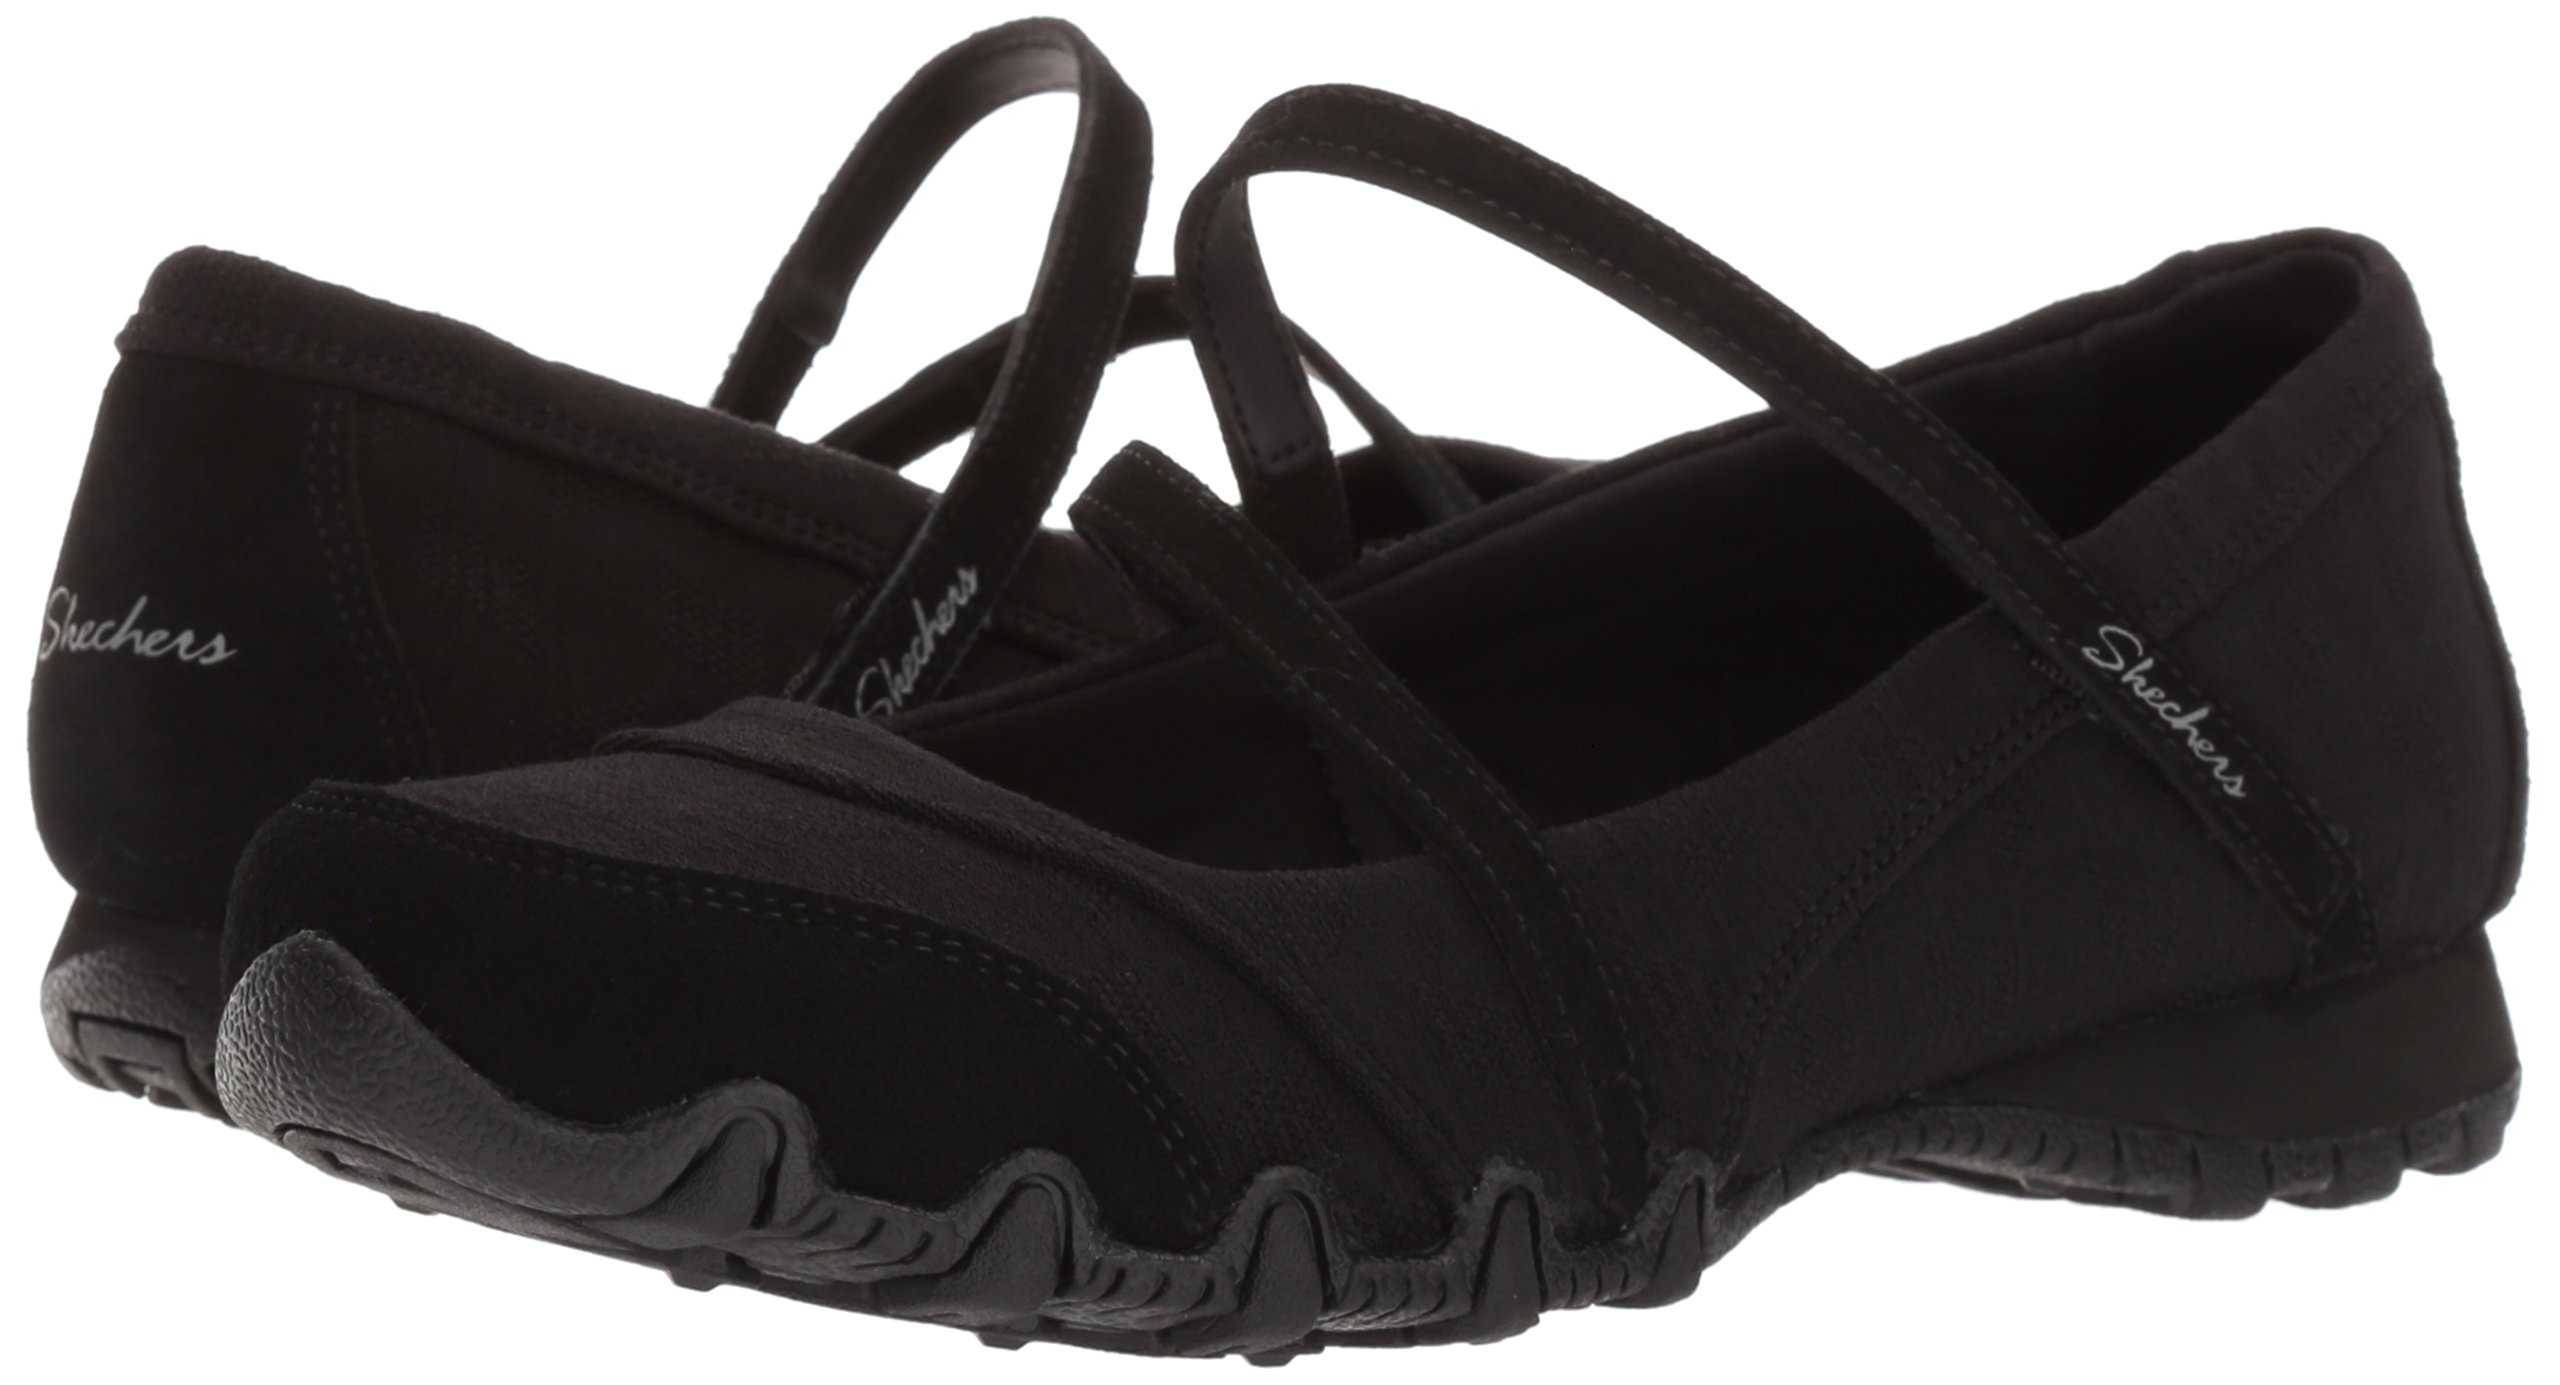 Skechers Women's Bikers -Fiesta Mary Jane Flat,7 M US,Black by Skechers (Image #6)